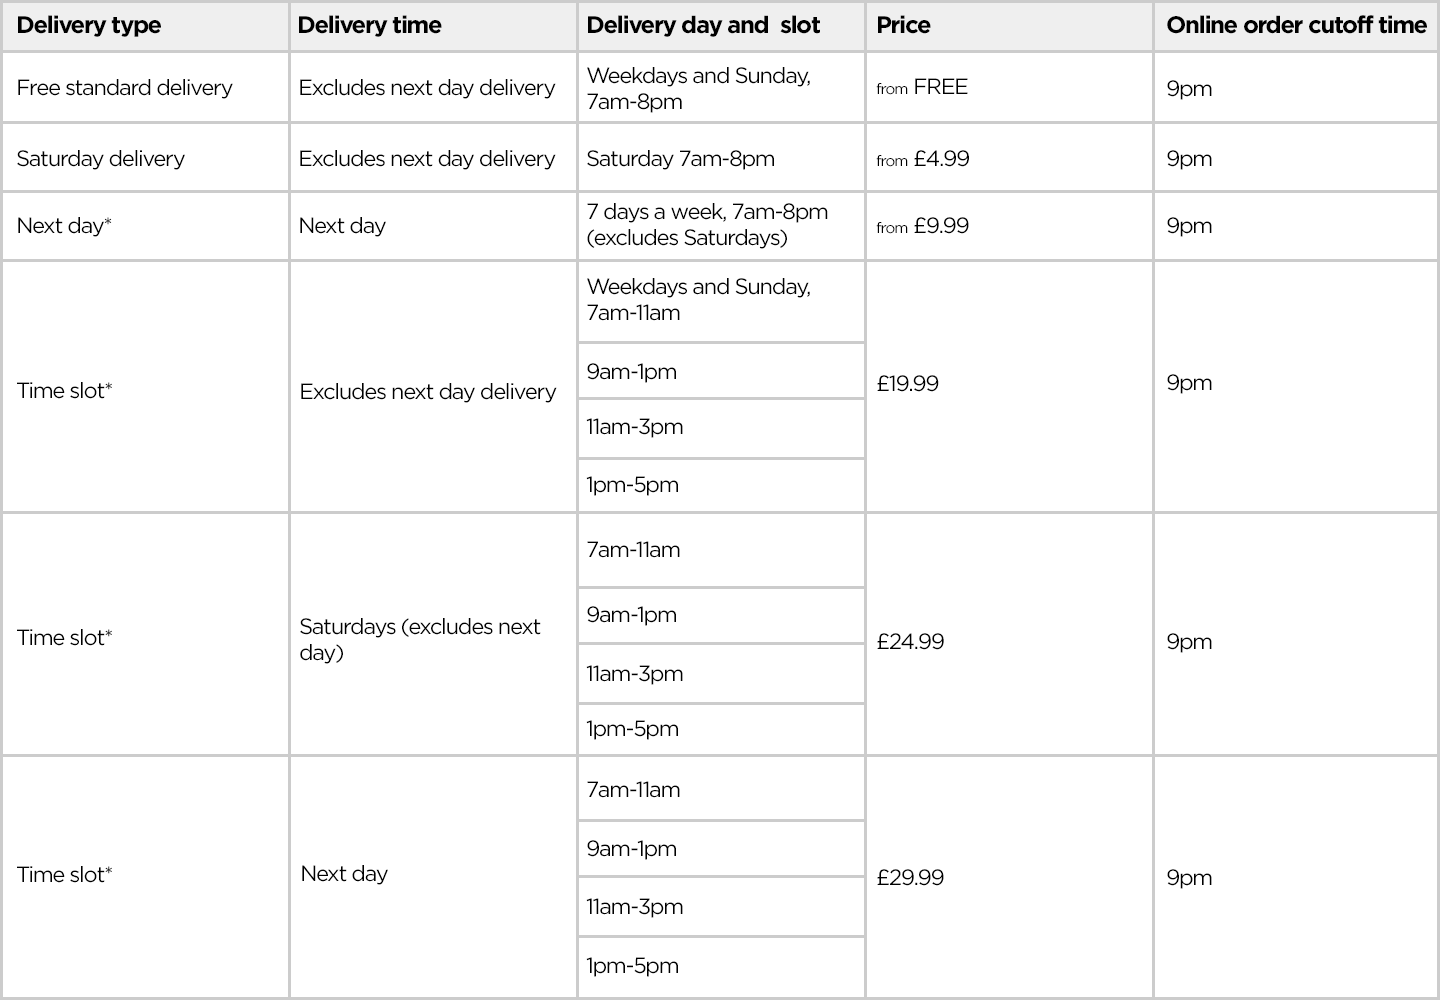 Uncategorized Currys Kitchen Appliances Uk get it delivered from same day and free currys you can only book next delivery time slot for selected large items subject to address please check individual